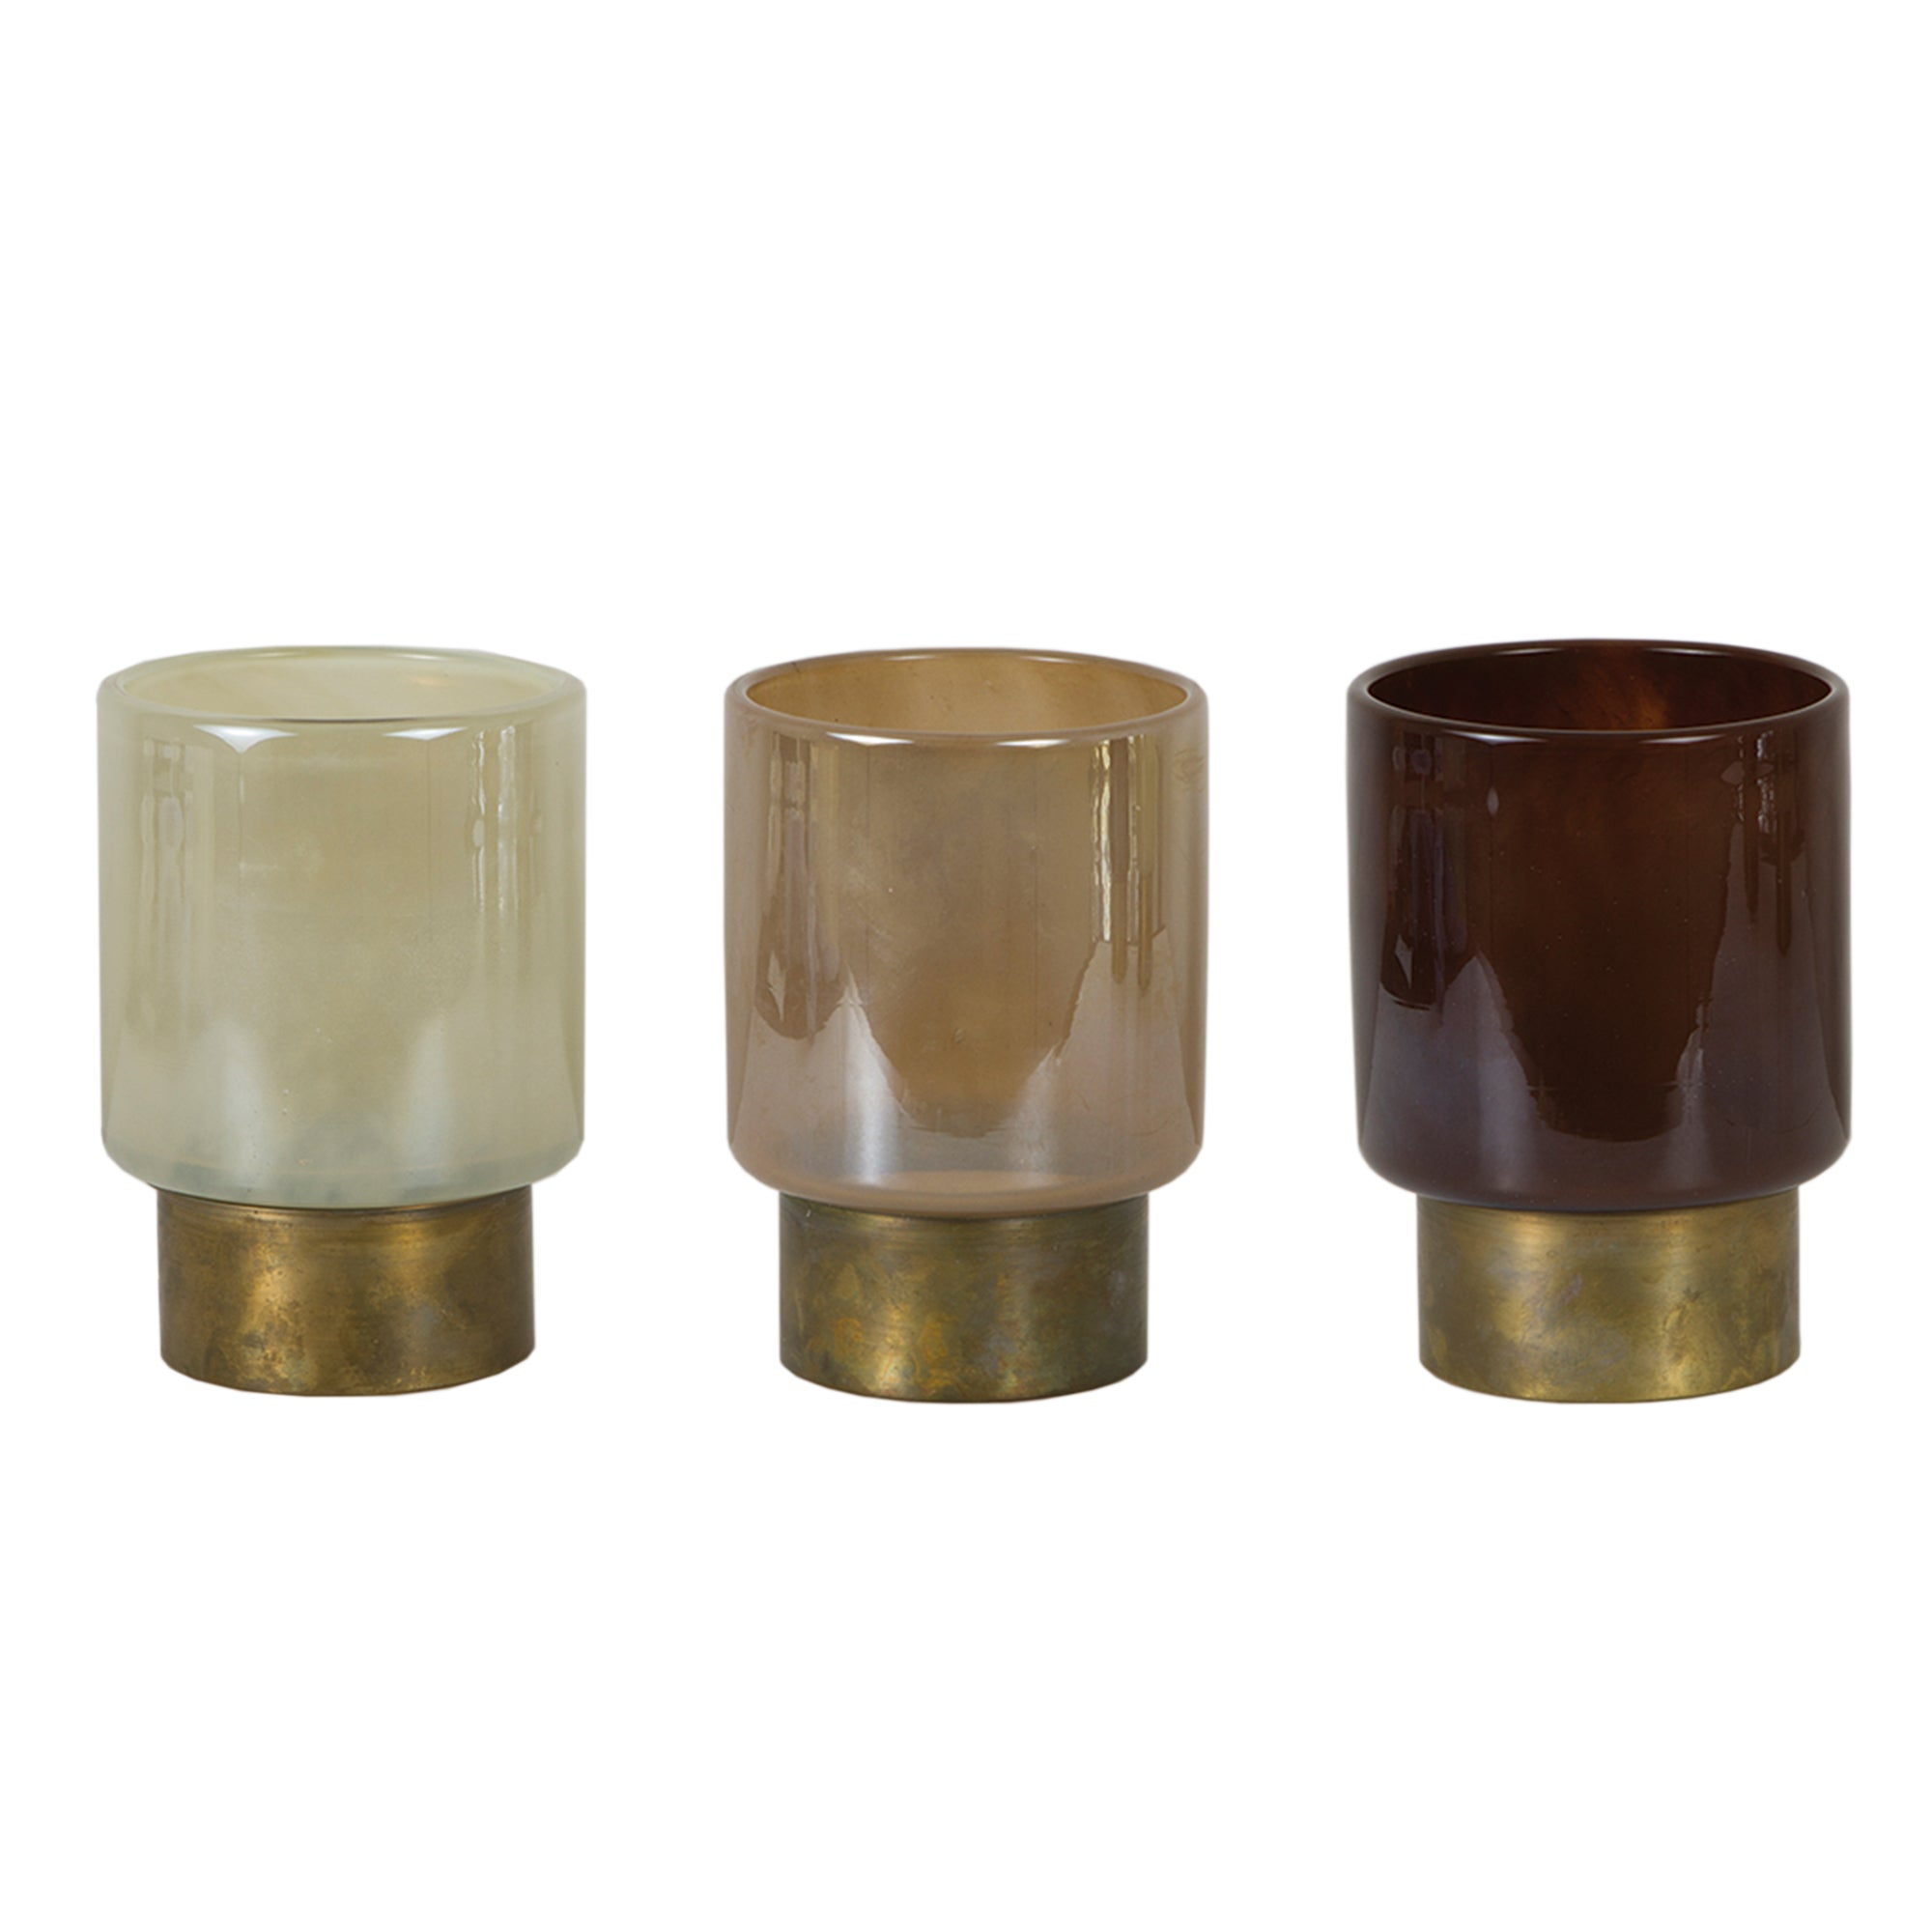 Photo of Hotel set of 3 glass tealight holders multi